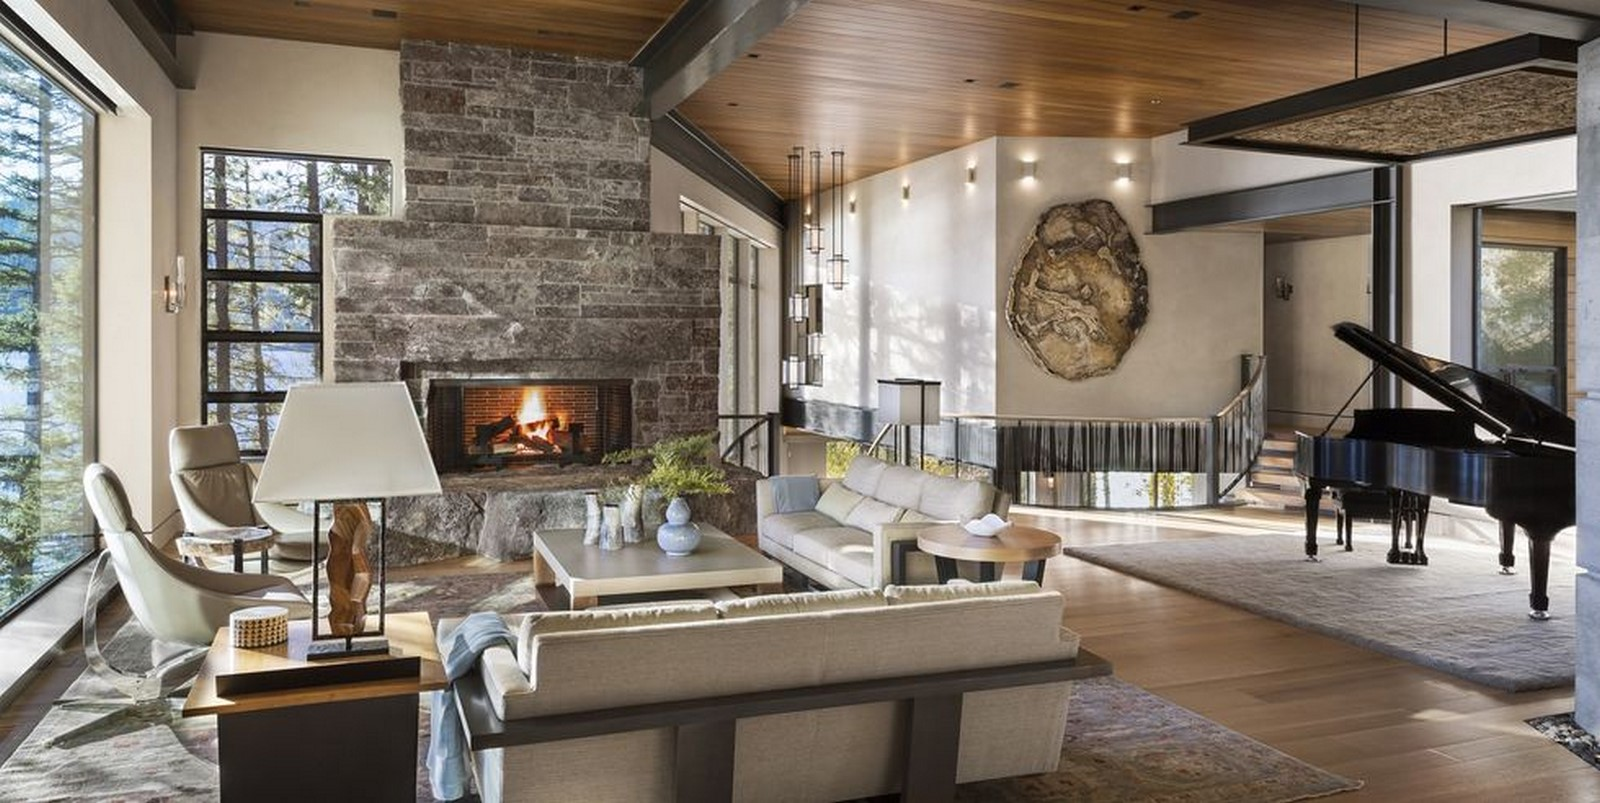 30 Examples of Rustic interiors for living rooms - Sheet4